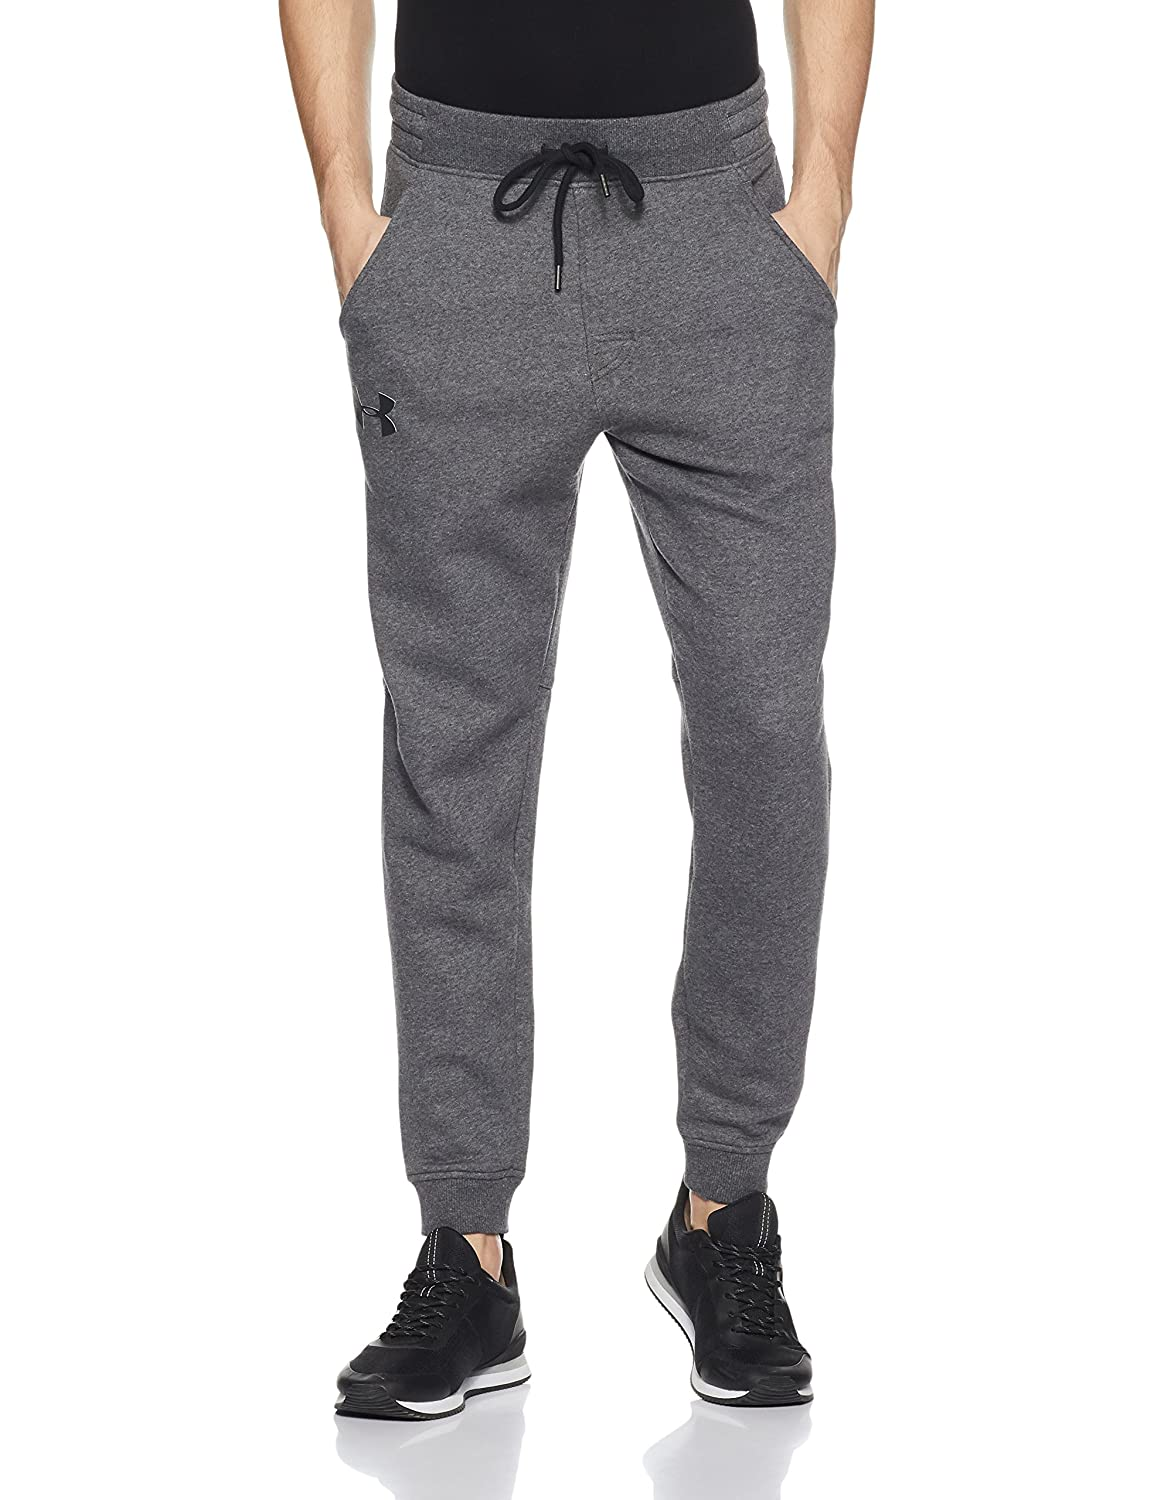 Rival Fitted Tapered Men's Jogger Under Armour 1309818